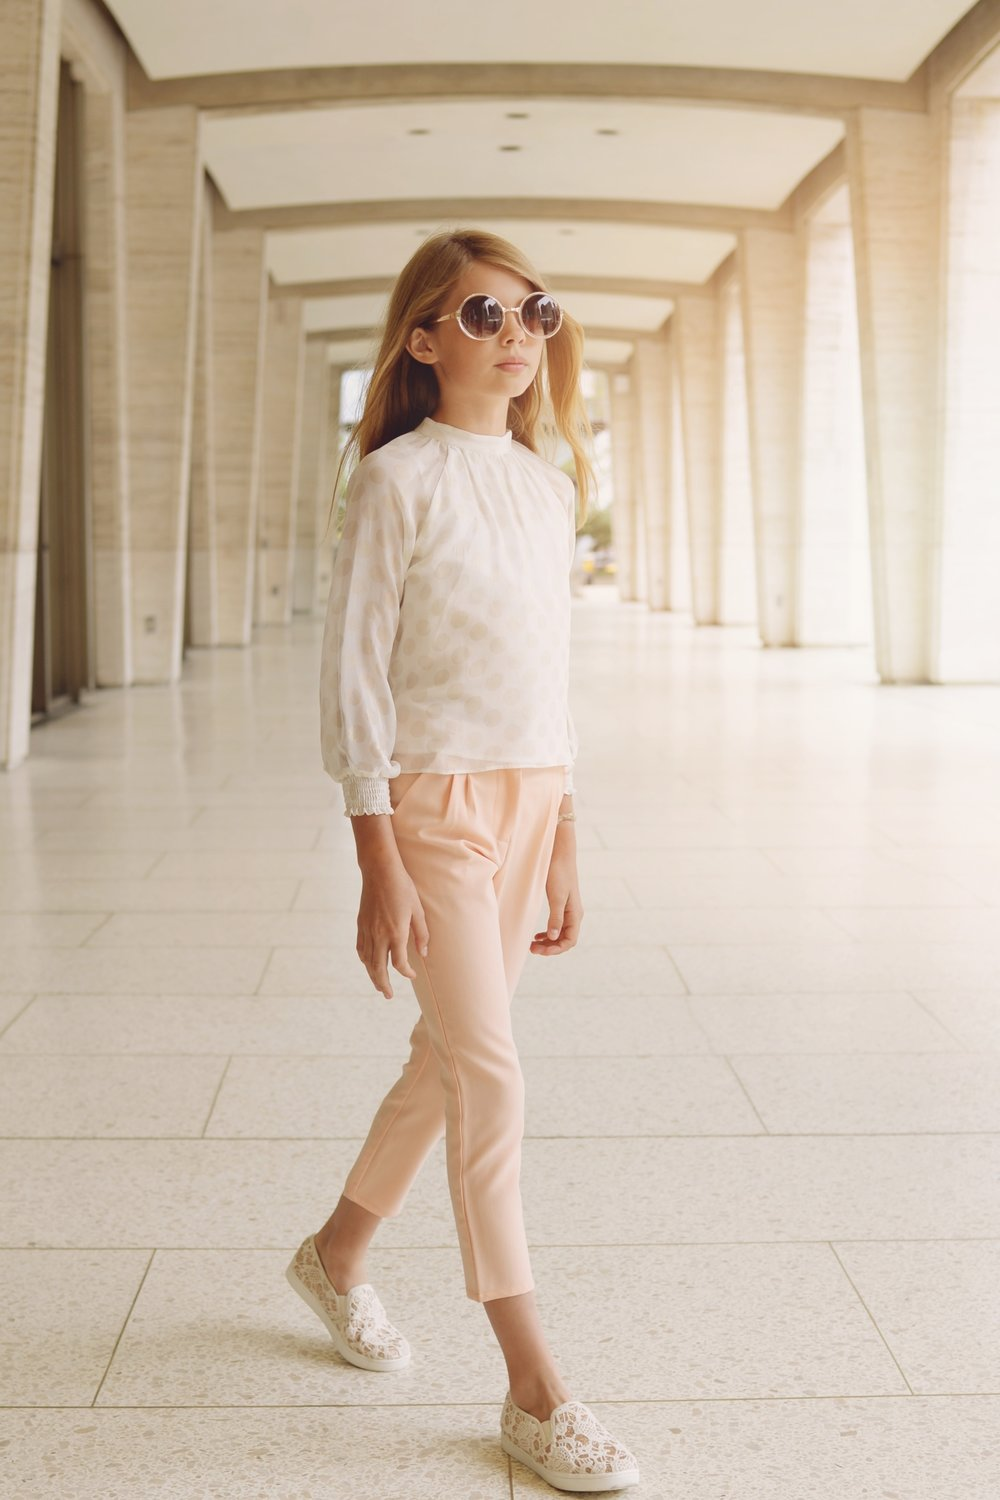 Enfant+Street+Style+by+Gina+Kim+Photography+Pale+Cloud-6.jpeg